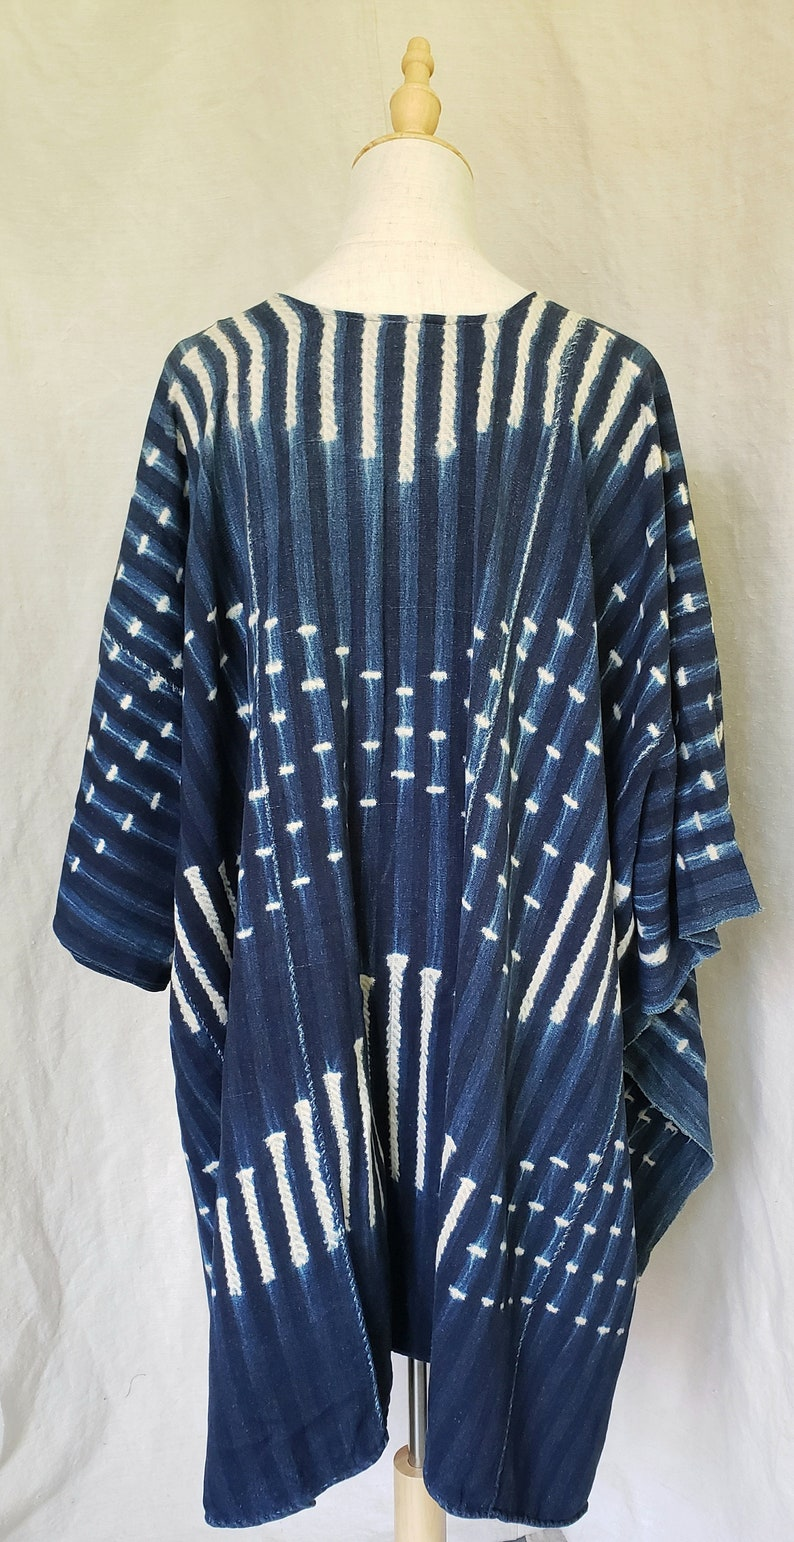 Gift for Her Tunic Indigo Textile Poncho Women/'s Top One Size Fits All P1952